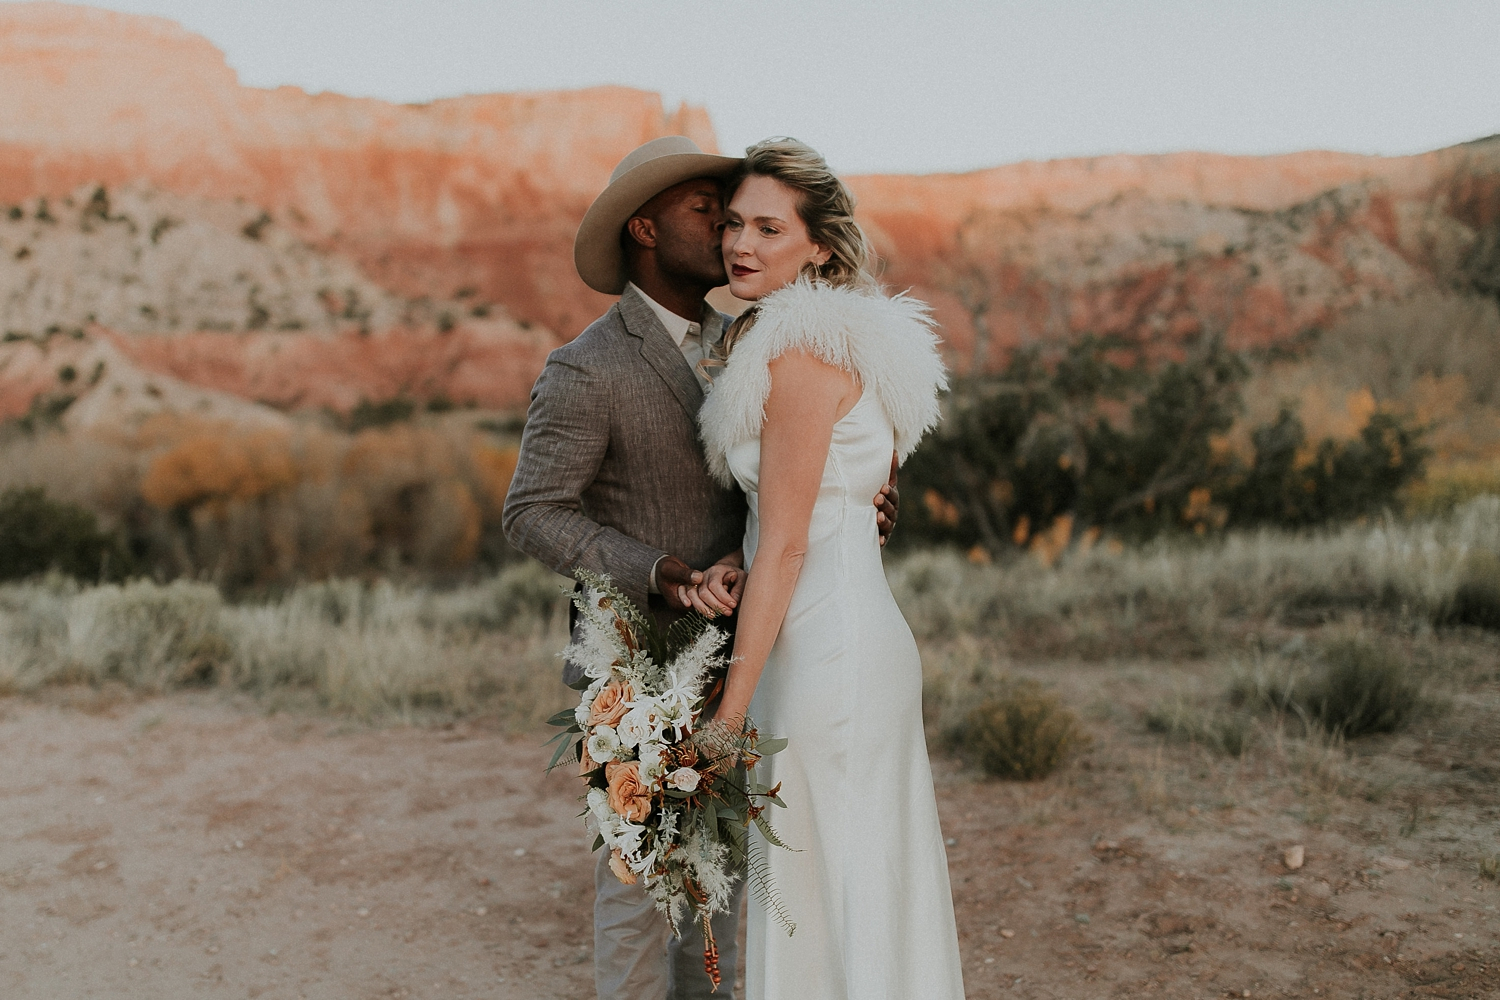 Alicia+lucia+photography+-+albuquerque+wedding+photographer+-+santa+fe+wedding+photography+-+new+mexico+wedding+photographer+-+new+mexico+ghost+ranch+wedding+-+styled+wedding+shoot_0067.jpg